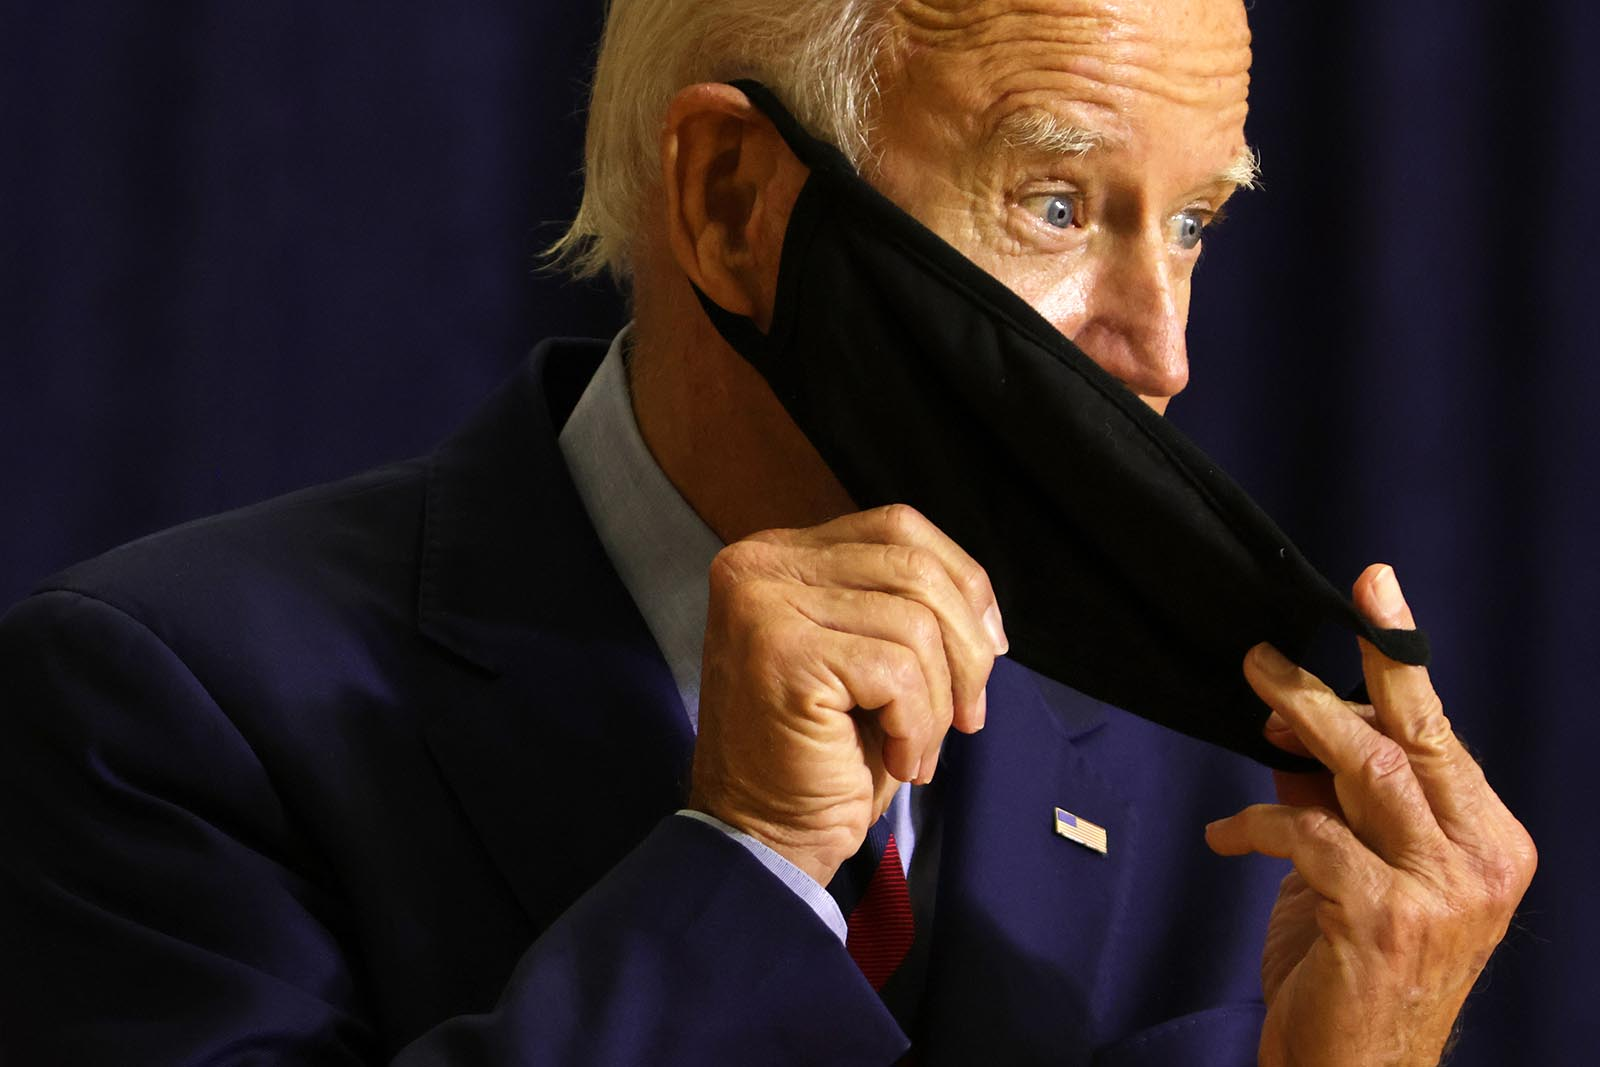 Democratic presidential nominee Joe Biden puts on his mask after speaking at a campaign event on September 4 in Wilmington, Delaware.